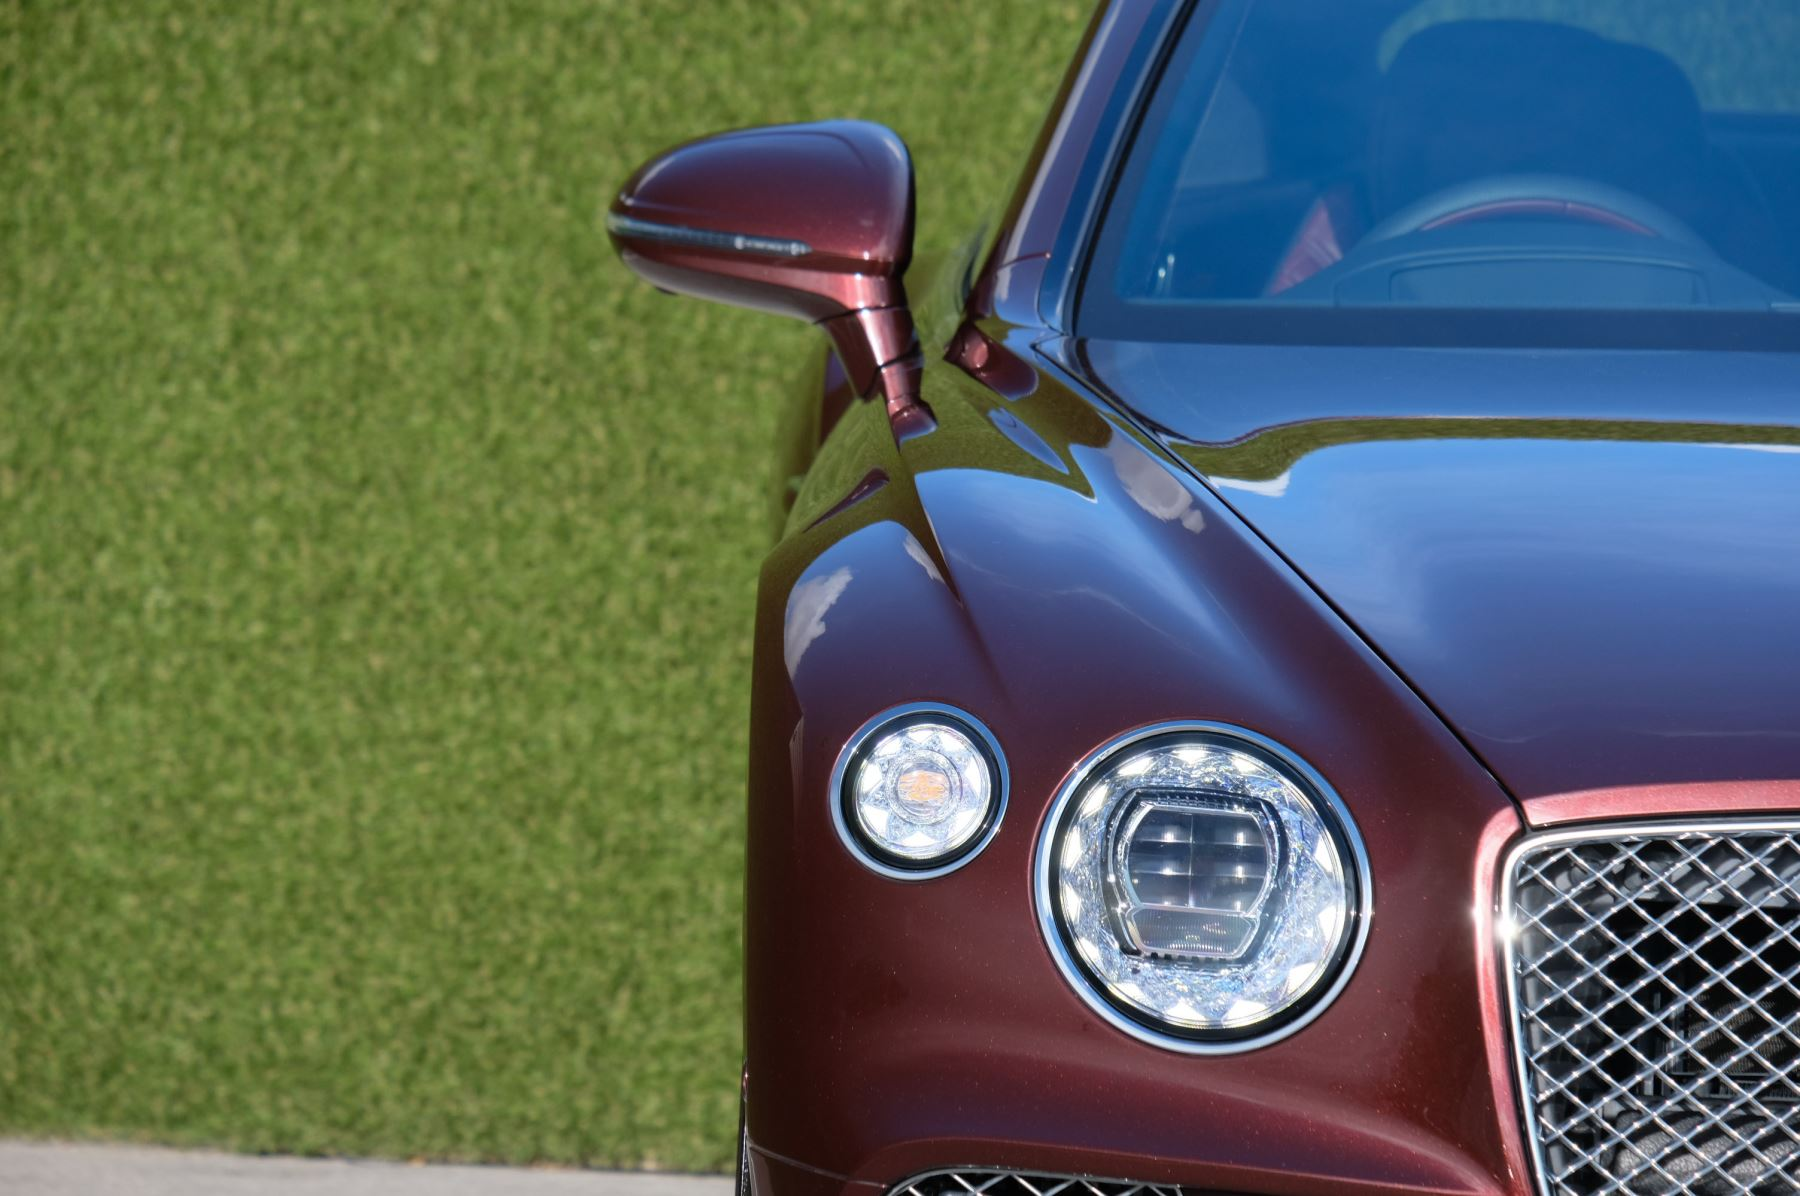 Bentley Continental GTC 6.0 W12 - First Edition Specification image 6